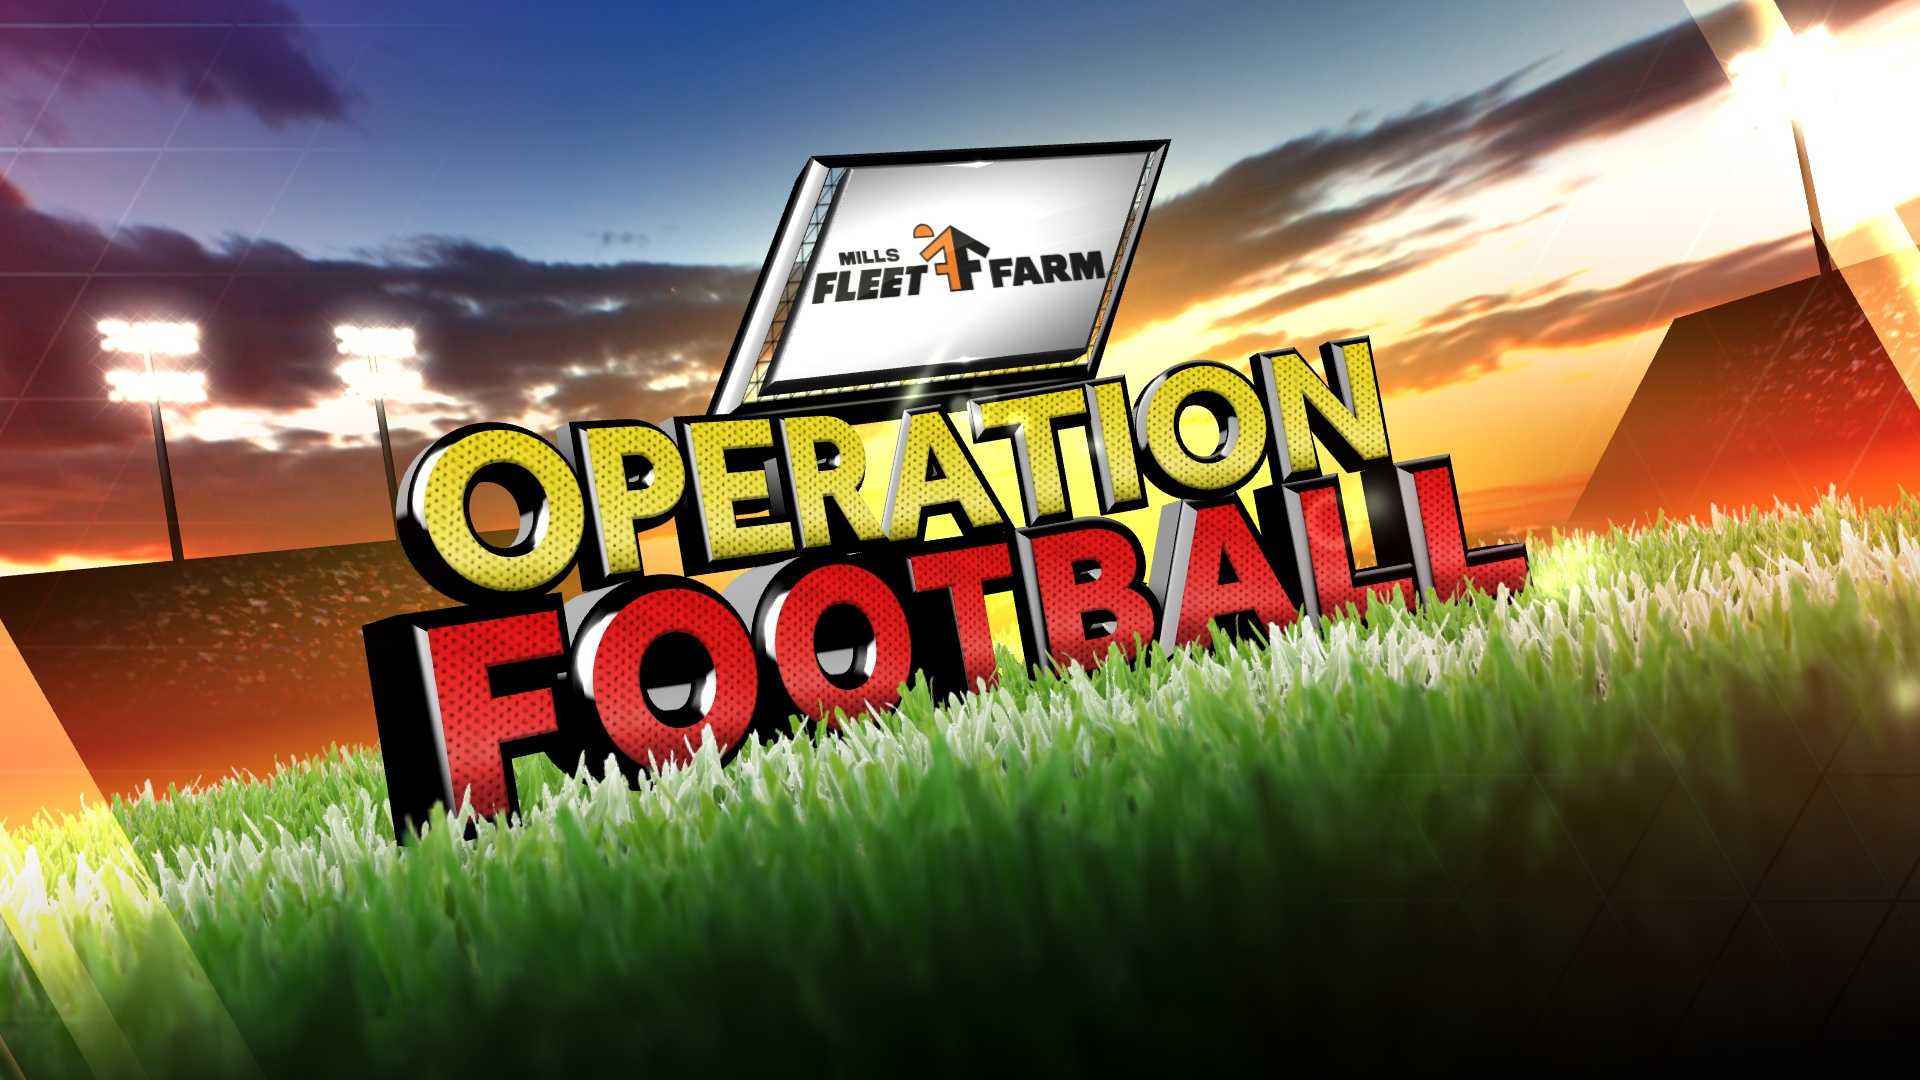 Operation Football Fleet Farm